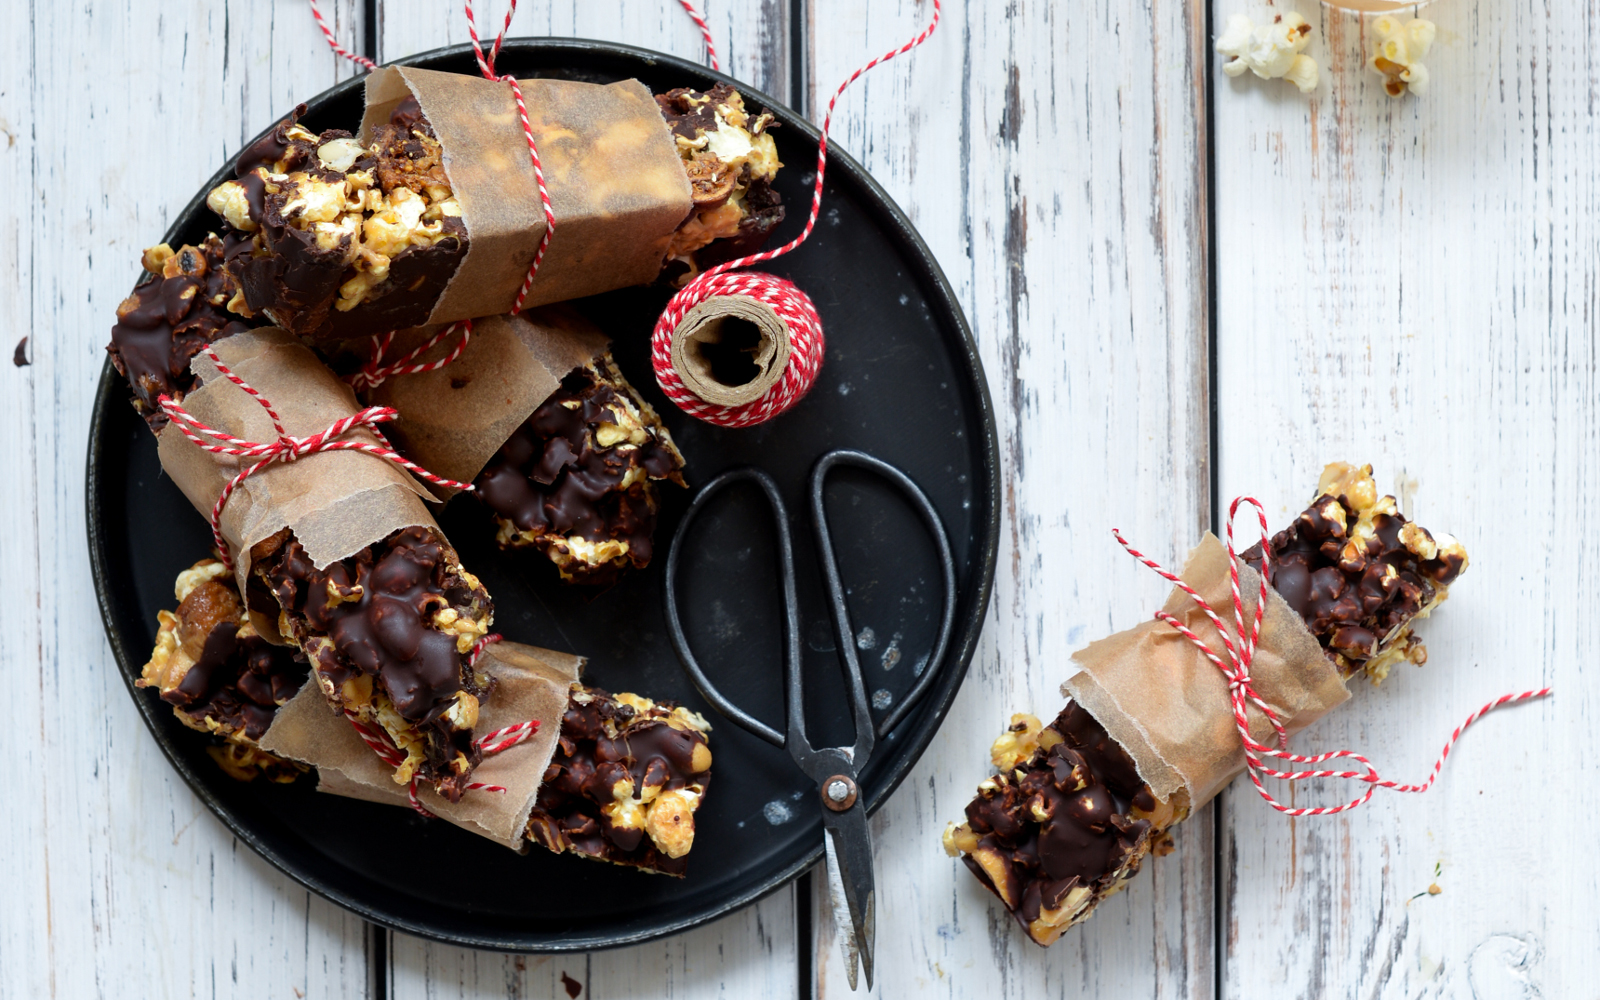 Popcorn Bars With Caramel, Chocolate, And Peanut Butter